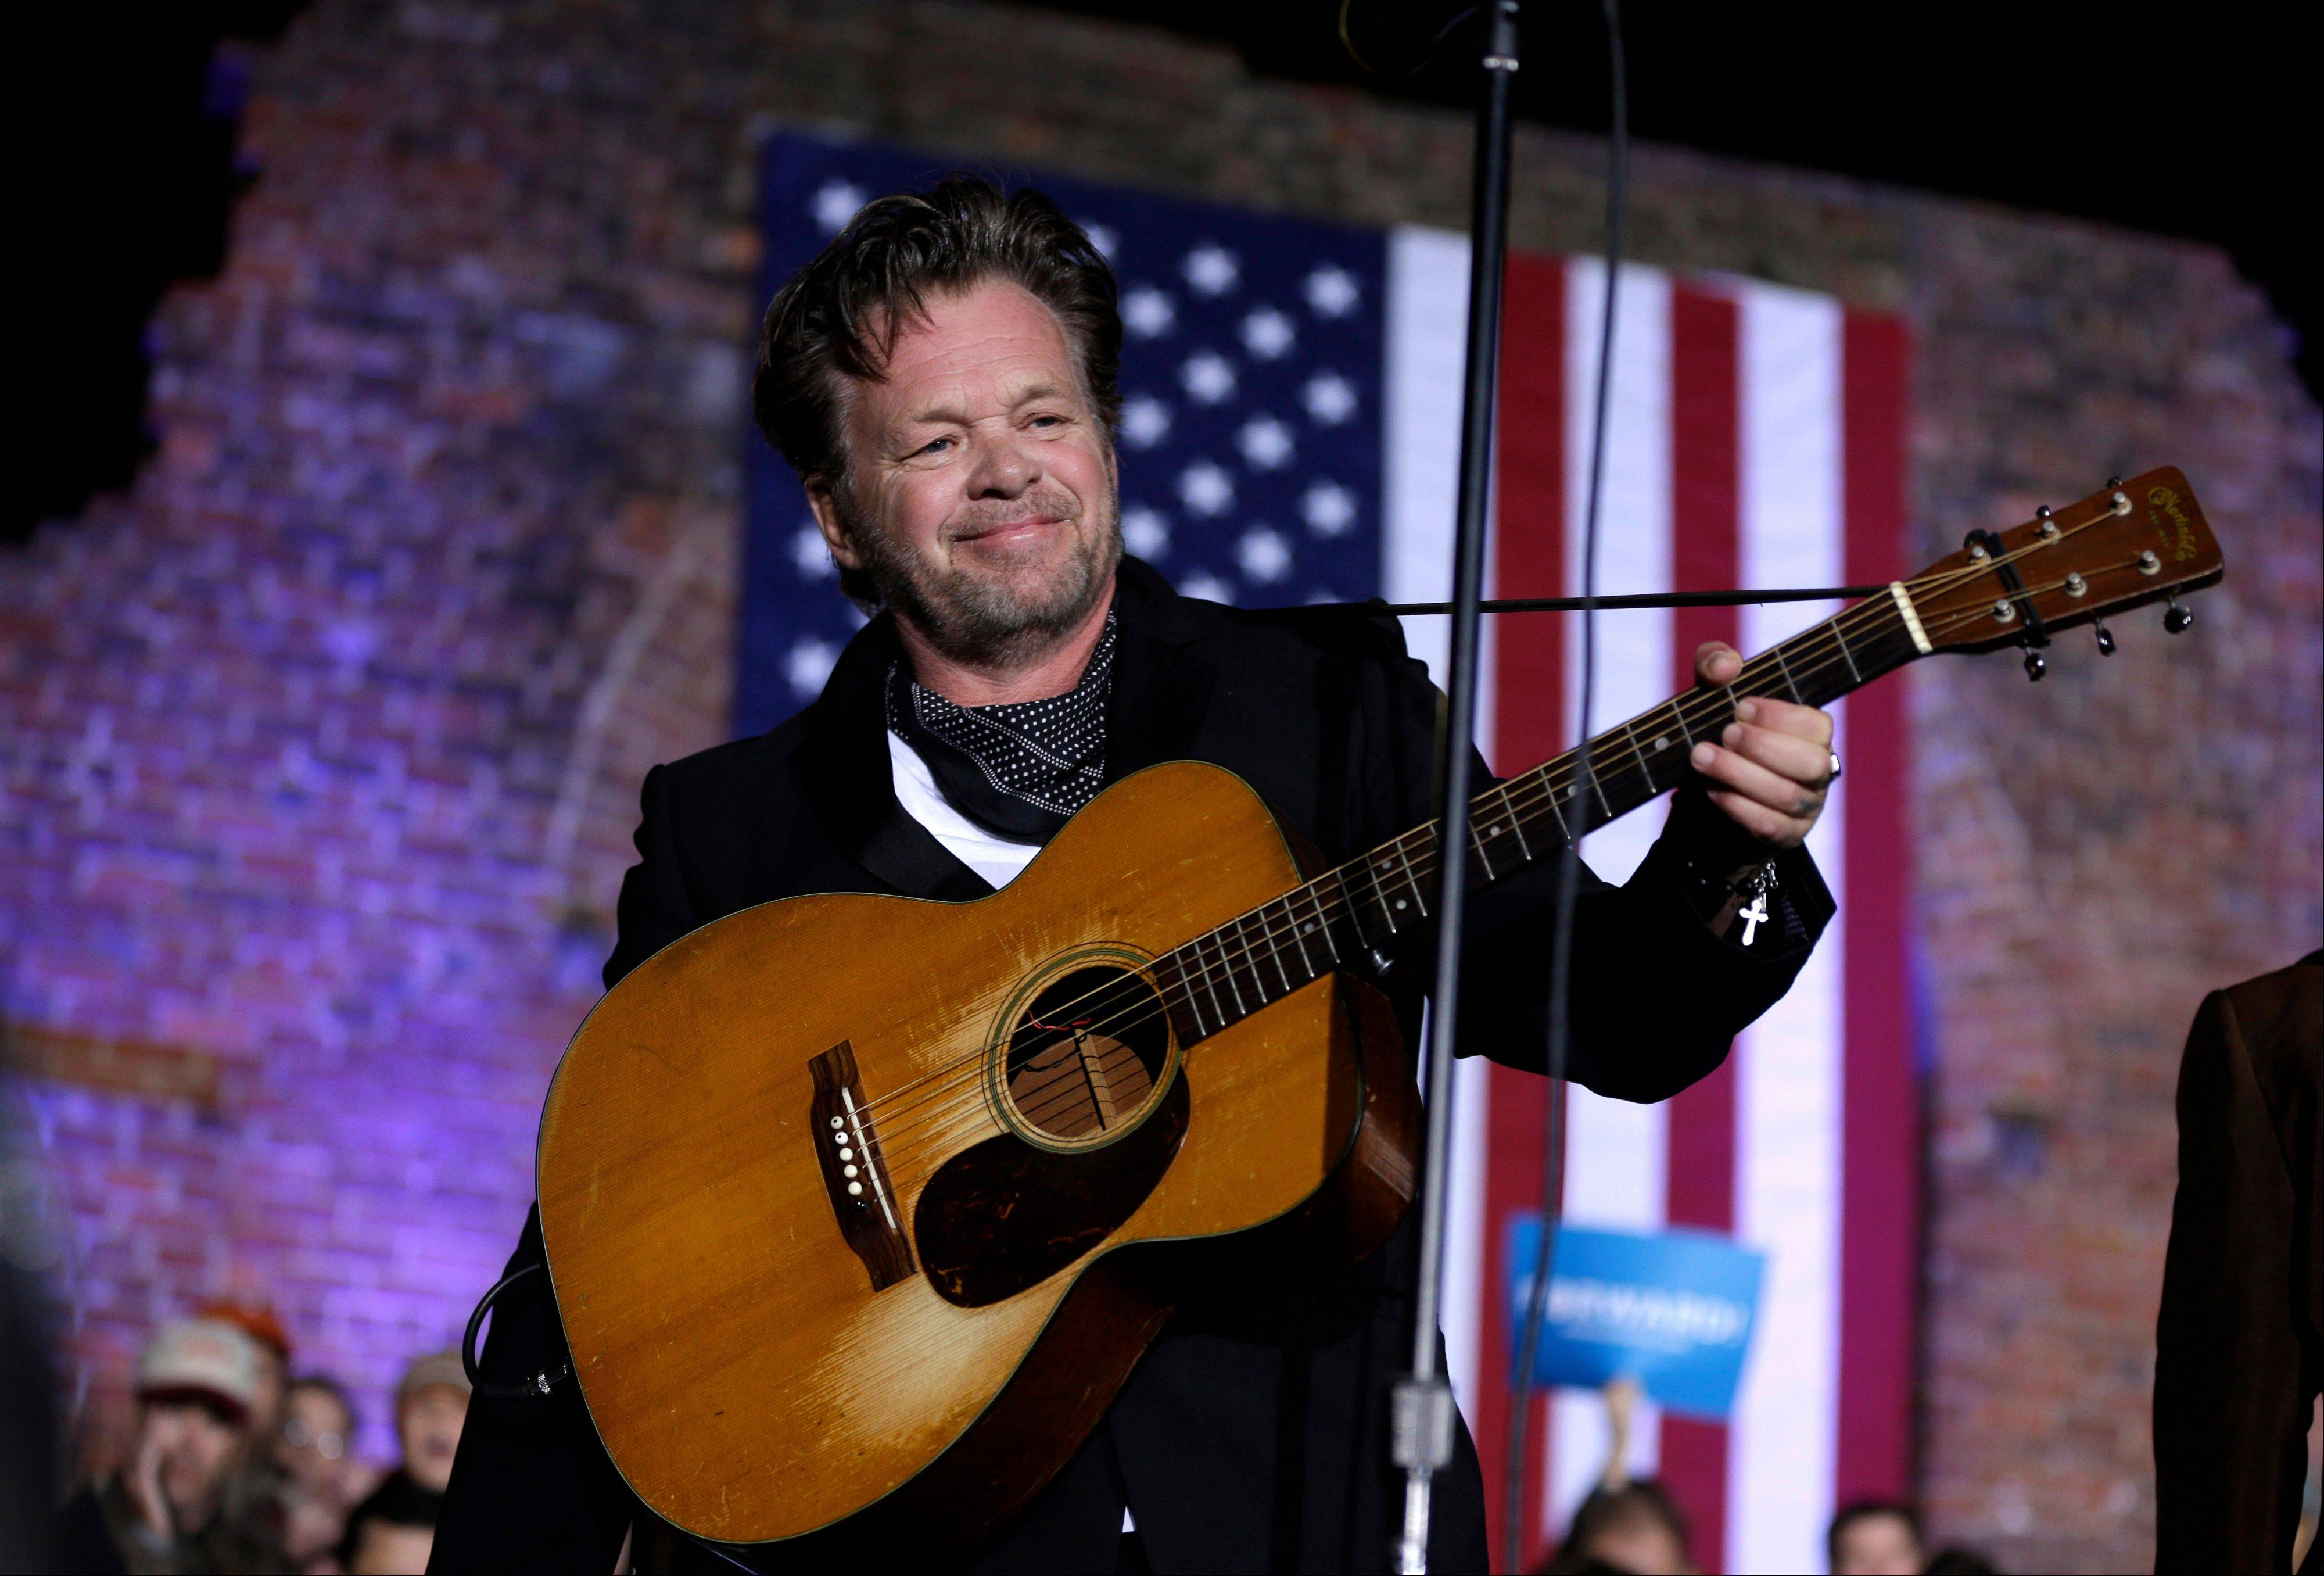 John Mellencamp is one of many singer-songwriters from the rock and pop world who are turning to the stage.